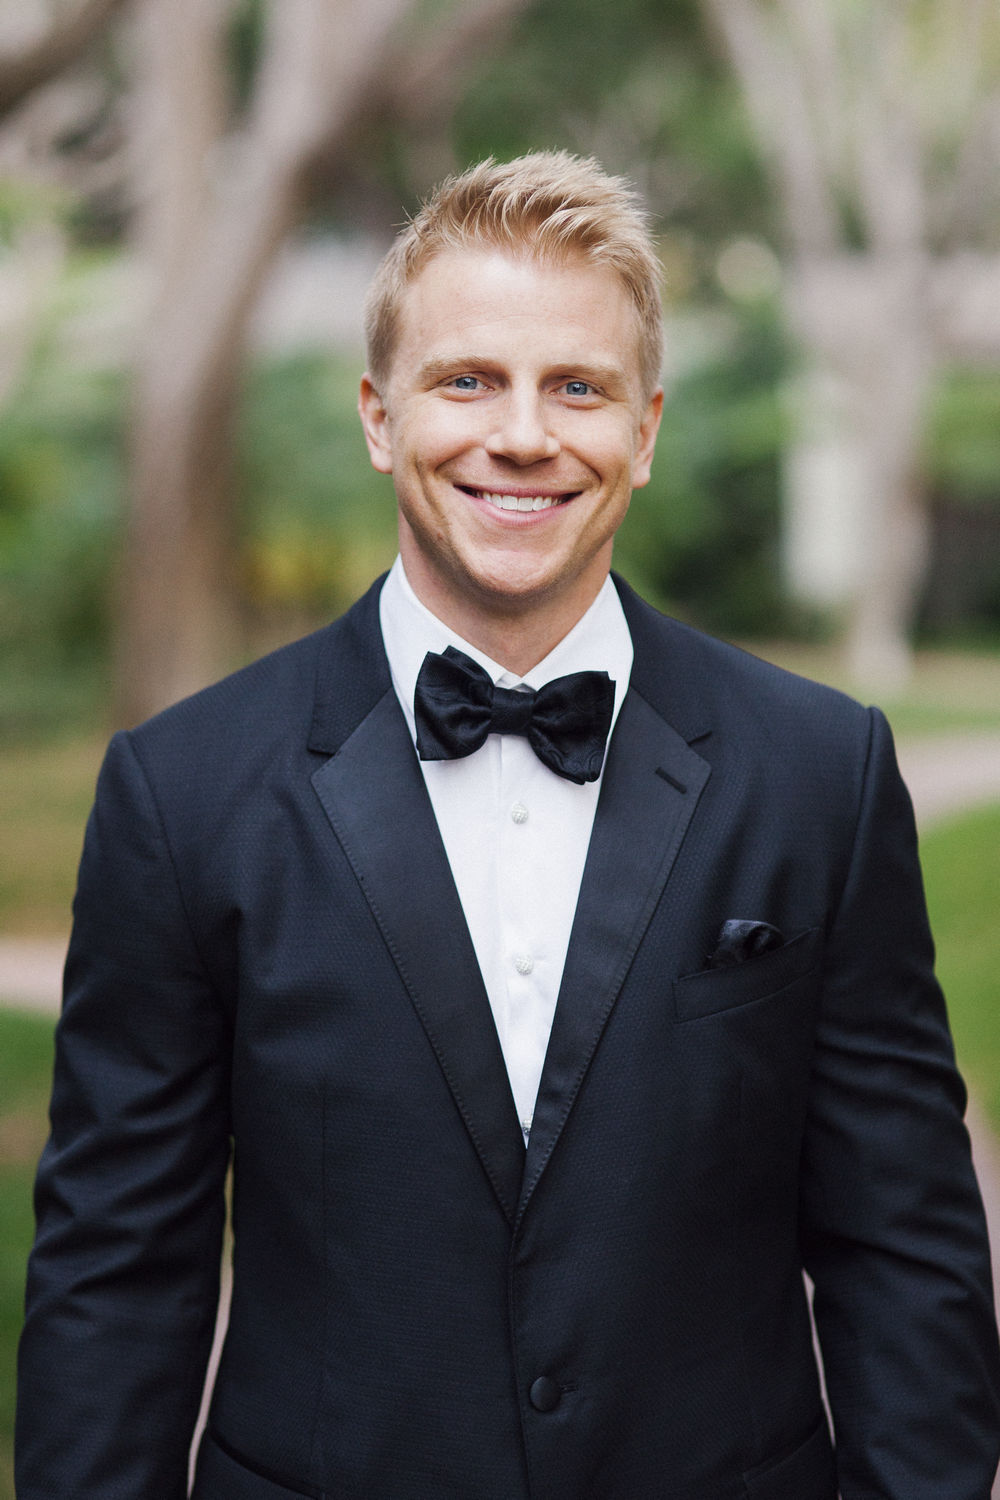 wedding-abc-bachelor-sean-lowe-catherine-guidici-johnandjoseph124.jpg